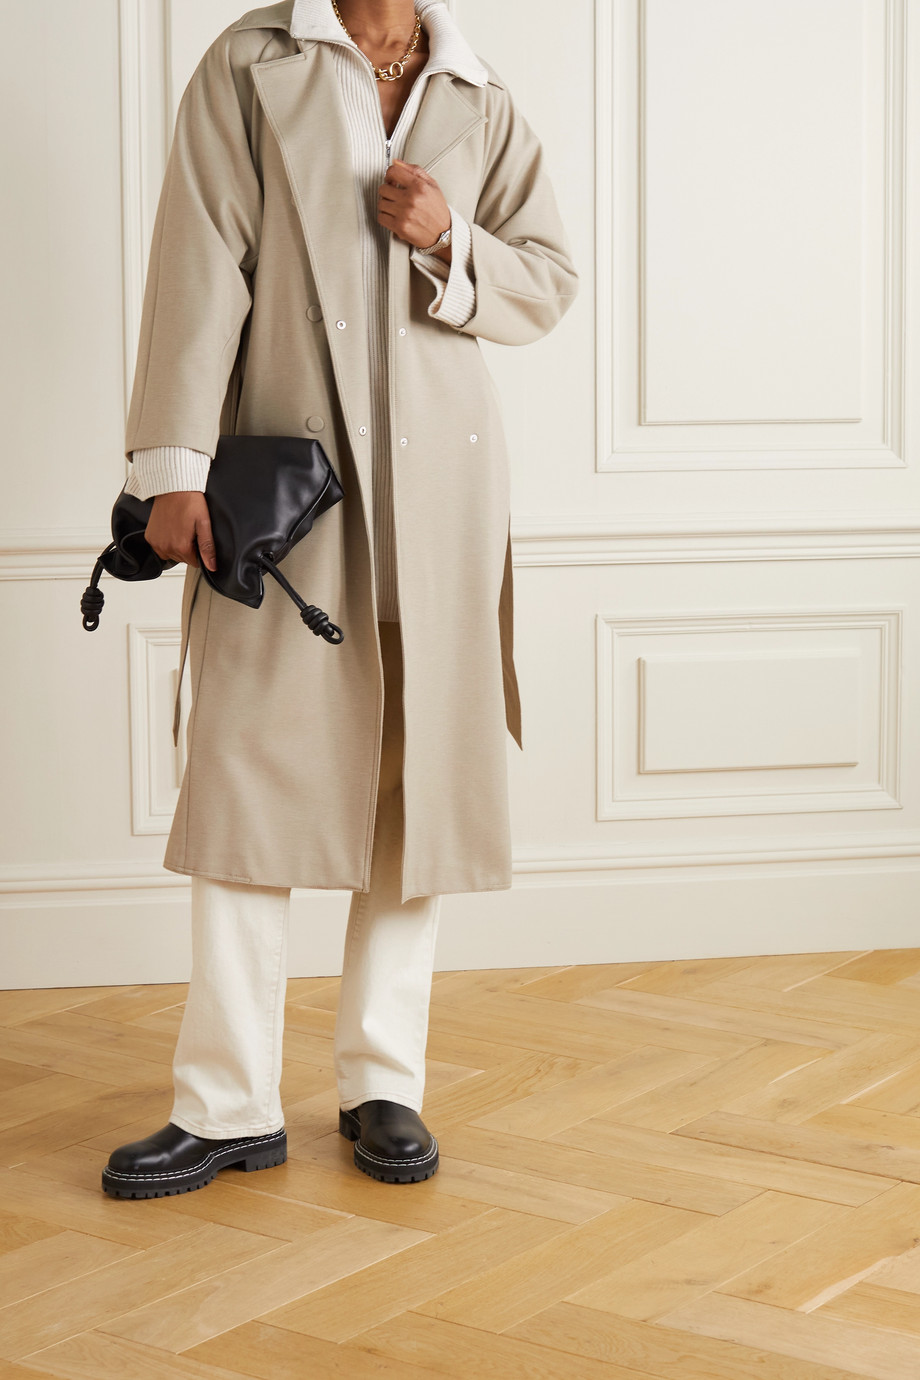 Max Mara + Leisure Cinghia belted double-breasted wool-blend jersey trench coat